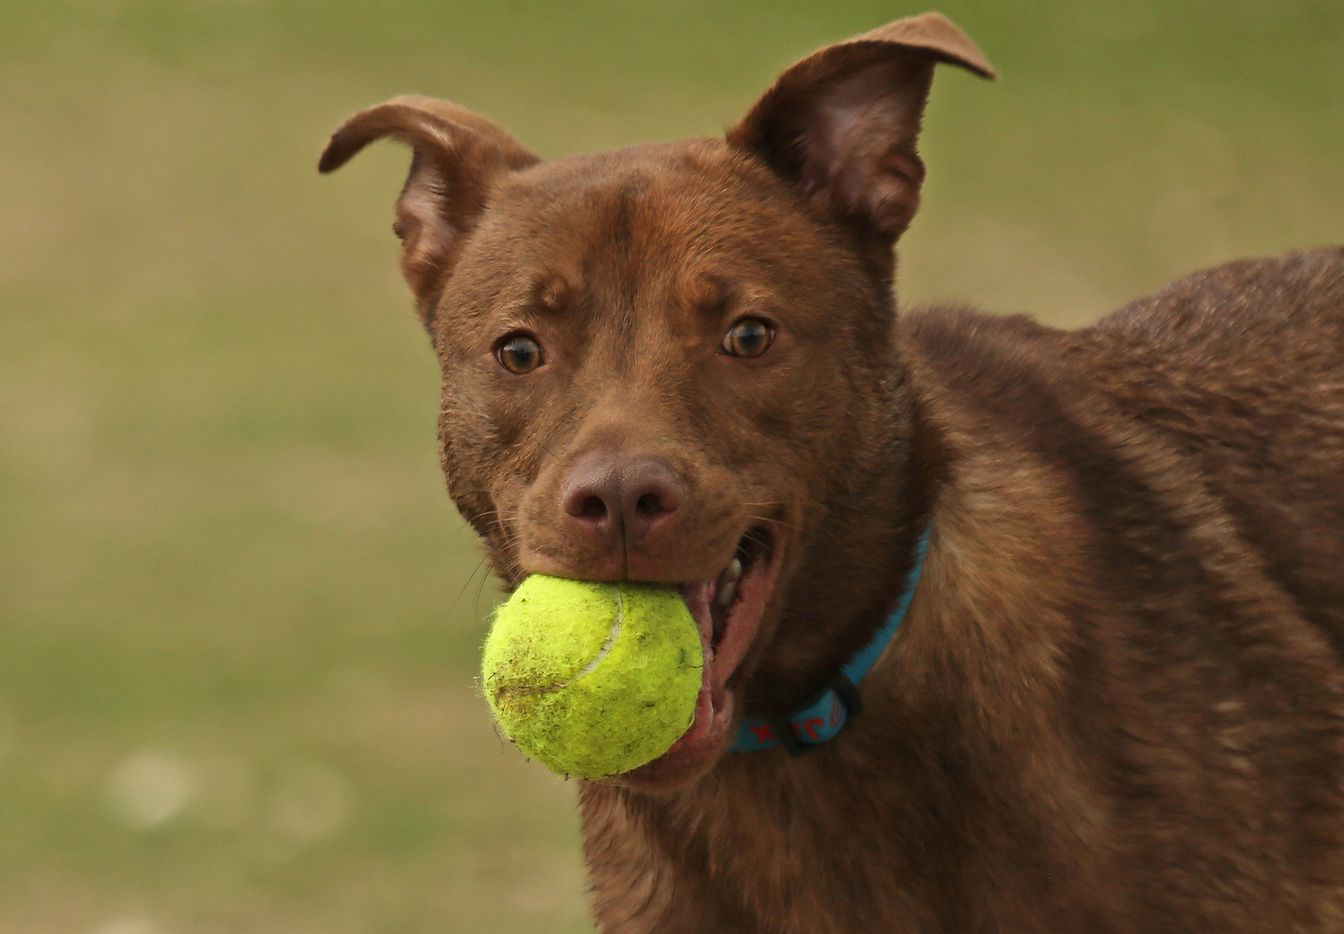 """""""Jax"""" enjoys a game of catch with his owners at NorthBark Dog Park, located near the intersection of the Dallas North Tollway and the Bush Toll Road, photographed on Saturday, April 1, 2017."""